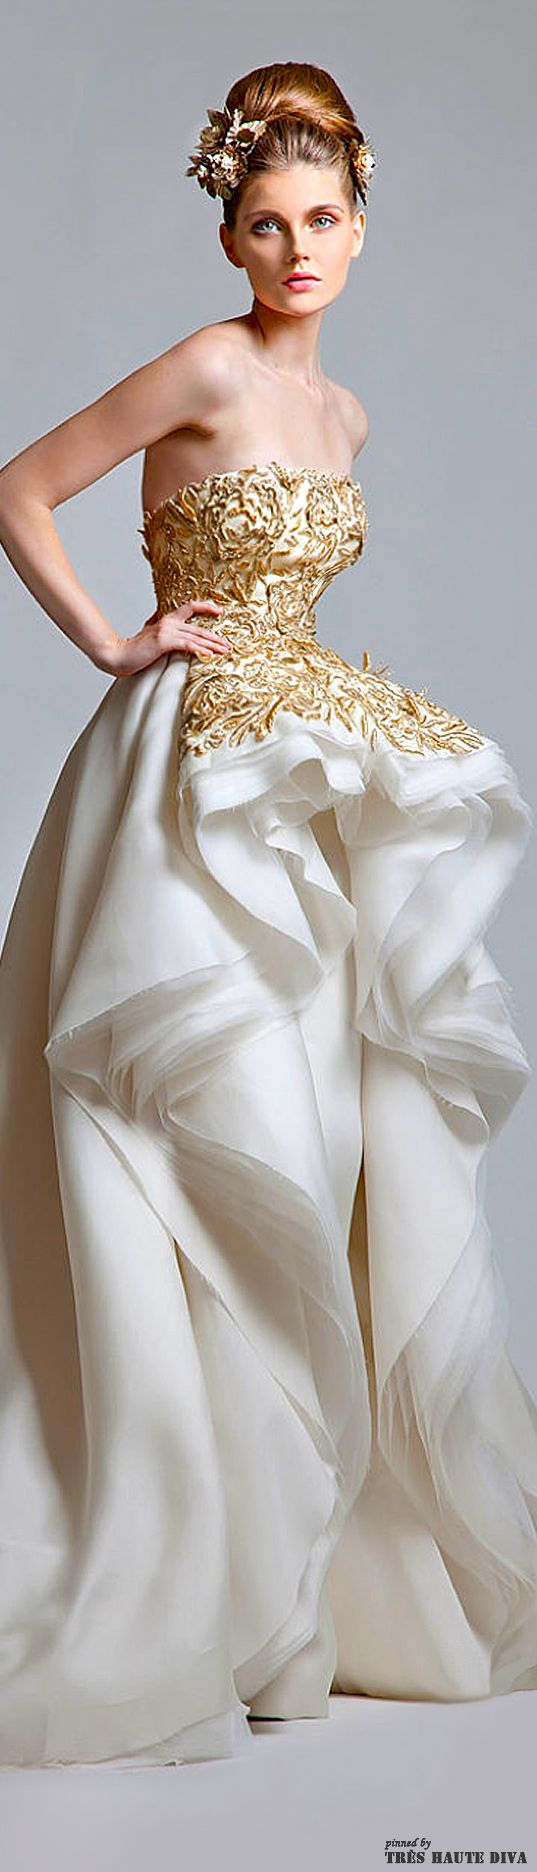 White gold wedding dress   best The Puff u The Fluff images on Pinterest  Fashion skirts